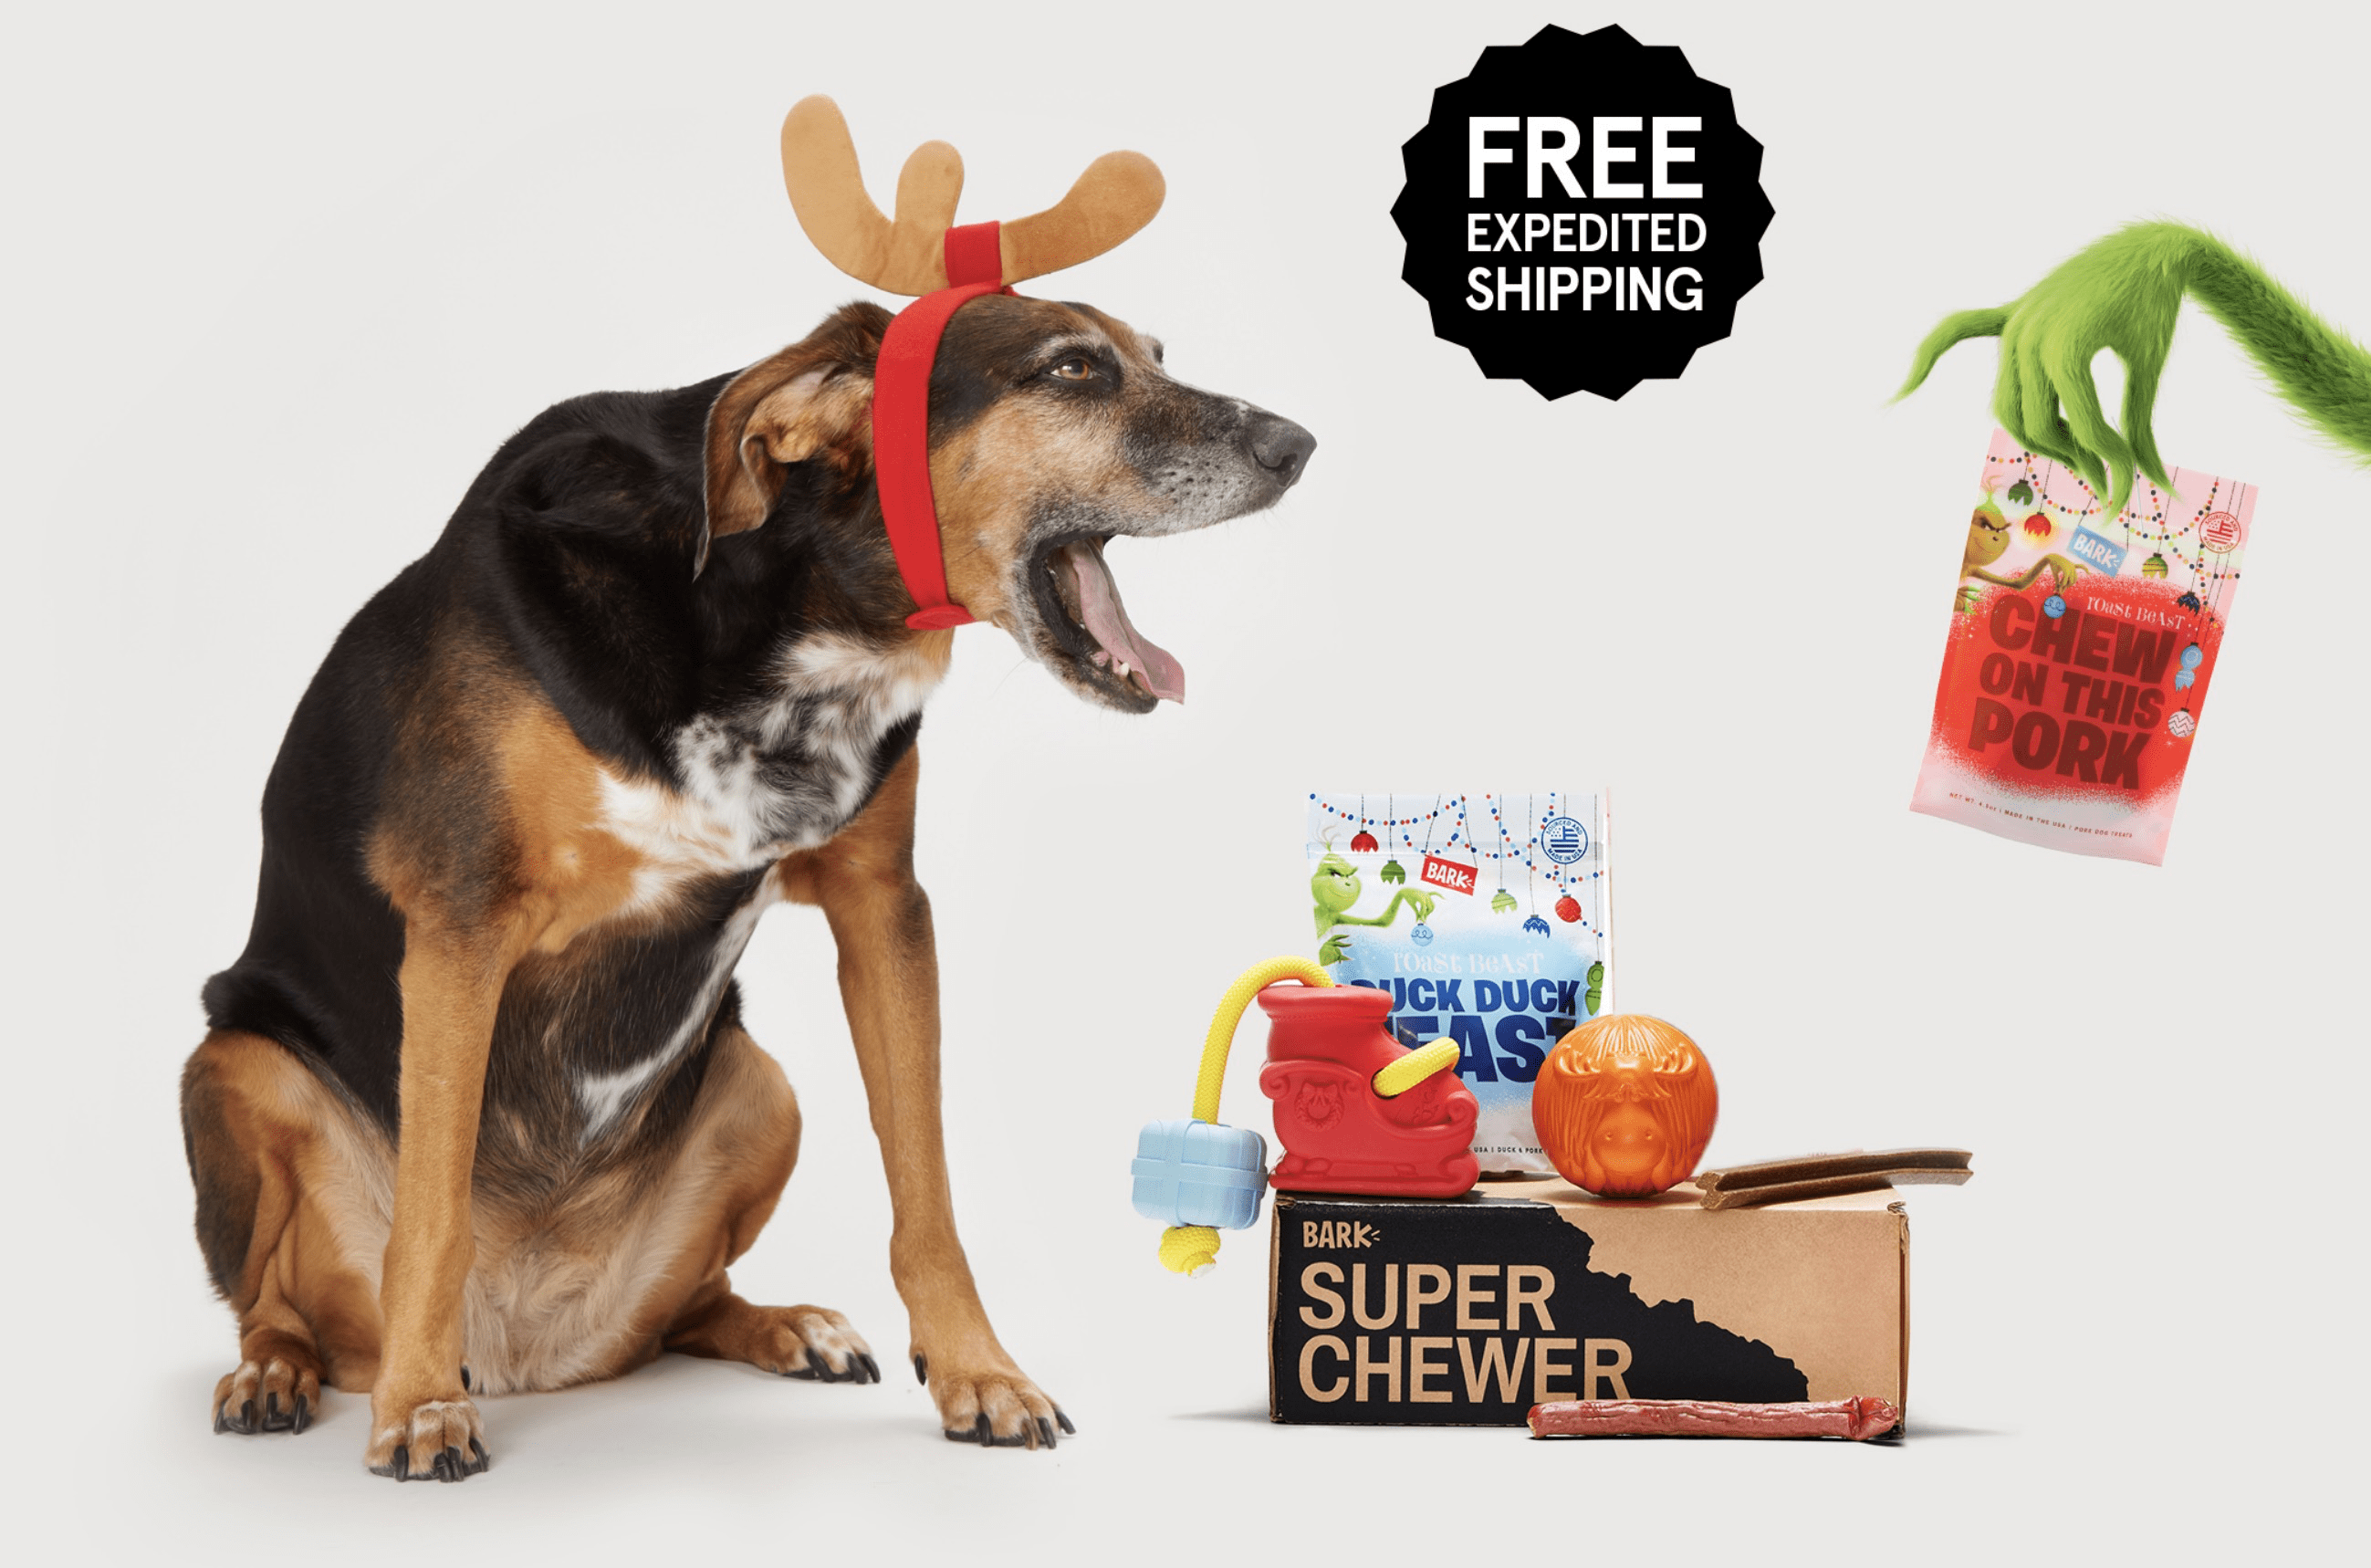 BarkBox Super Chewer Coupon: Get Free Expedited Shipping!